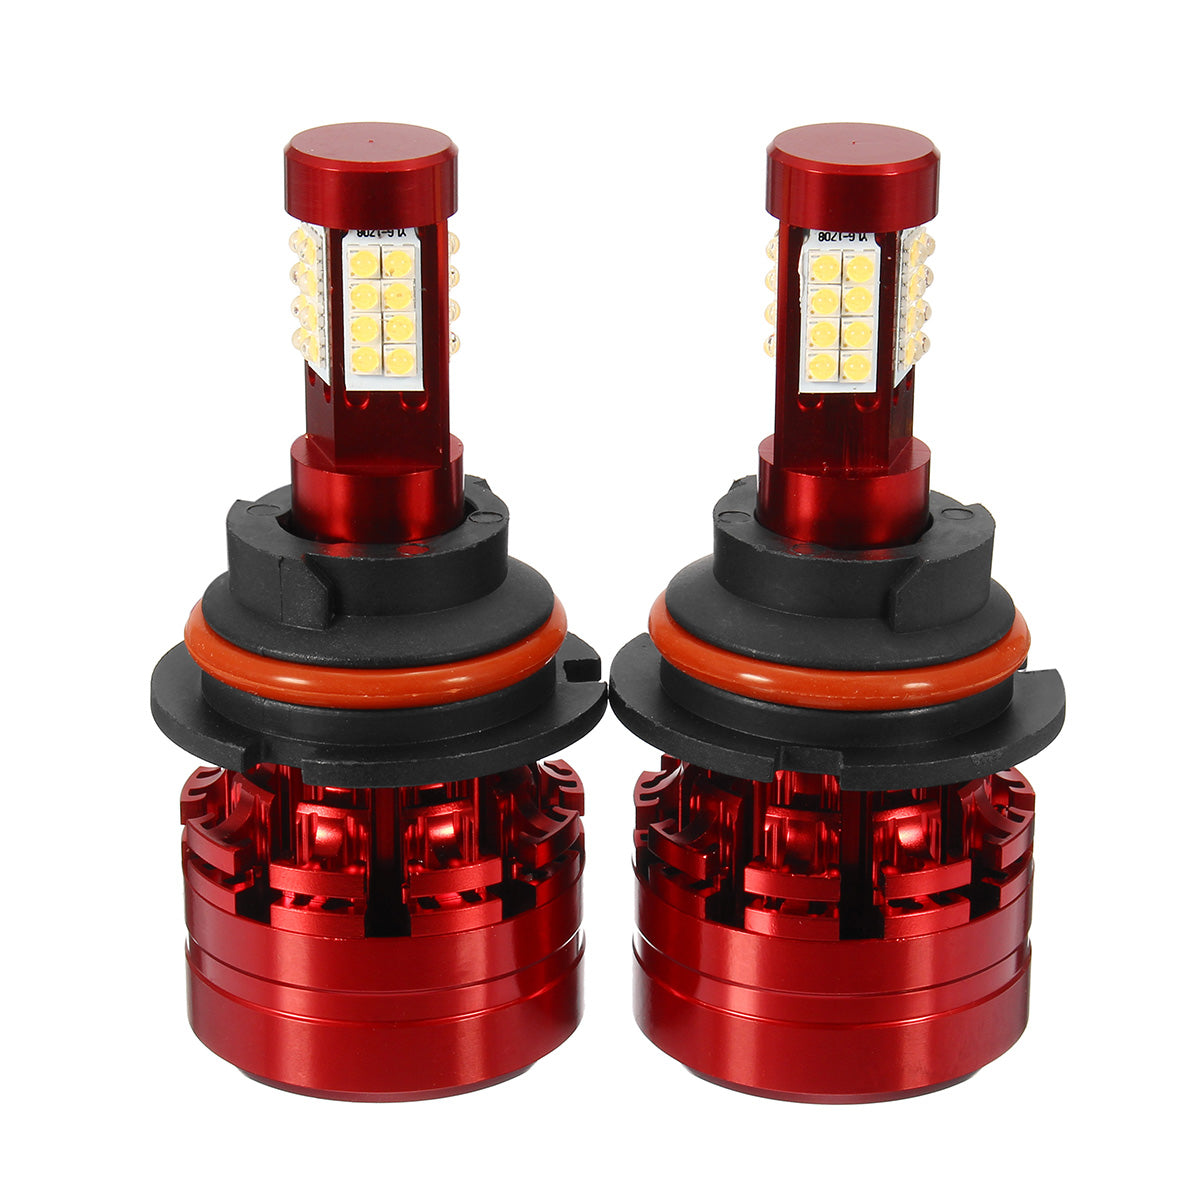 1Pair 9007 80W 8000LM 6000K Car LED Headlight Light Lamp Low Beam Bulbs High Power